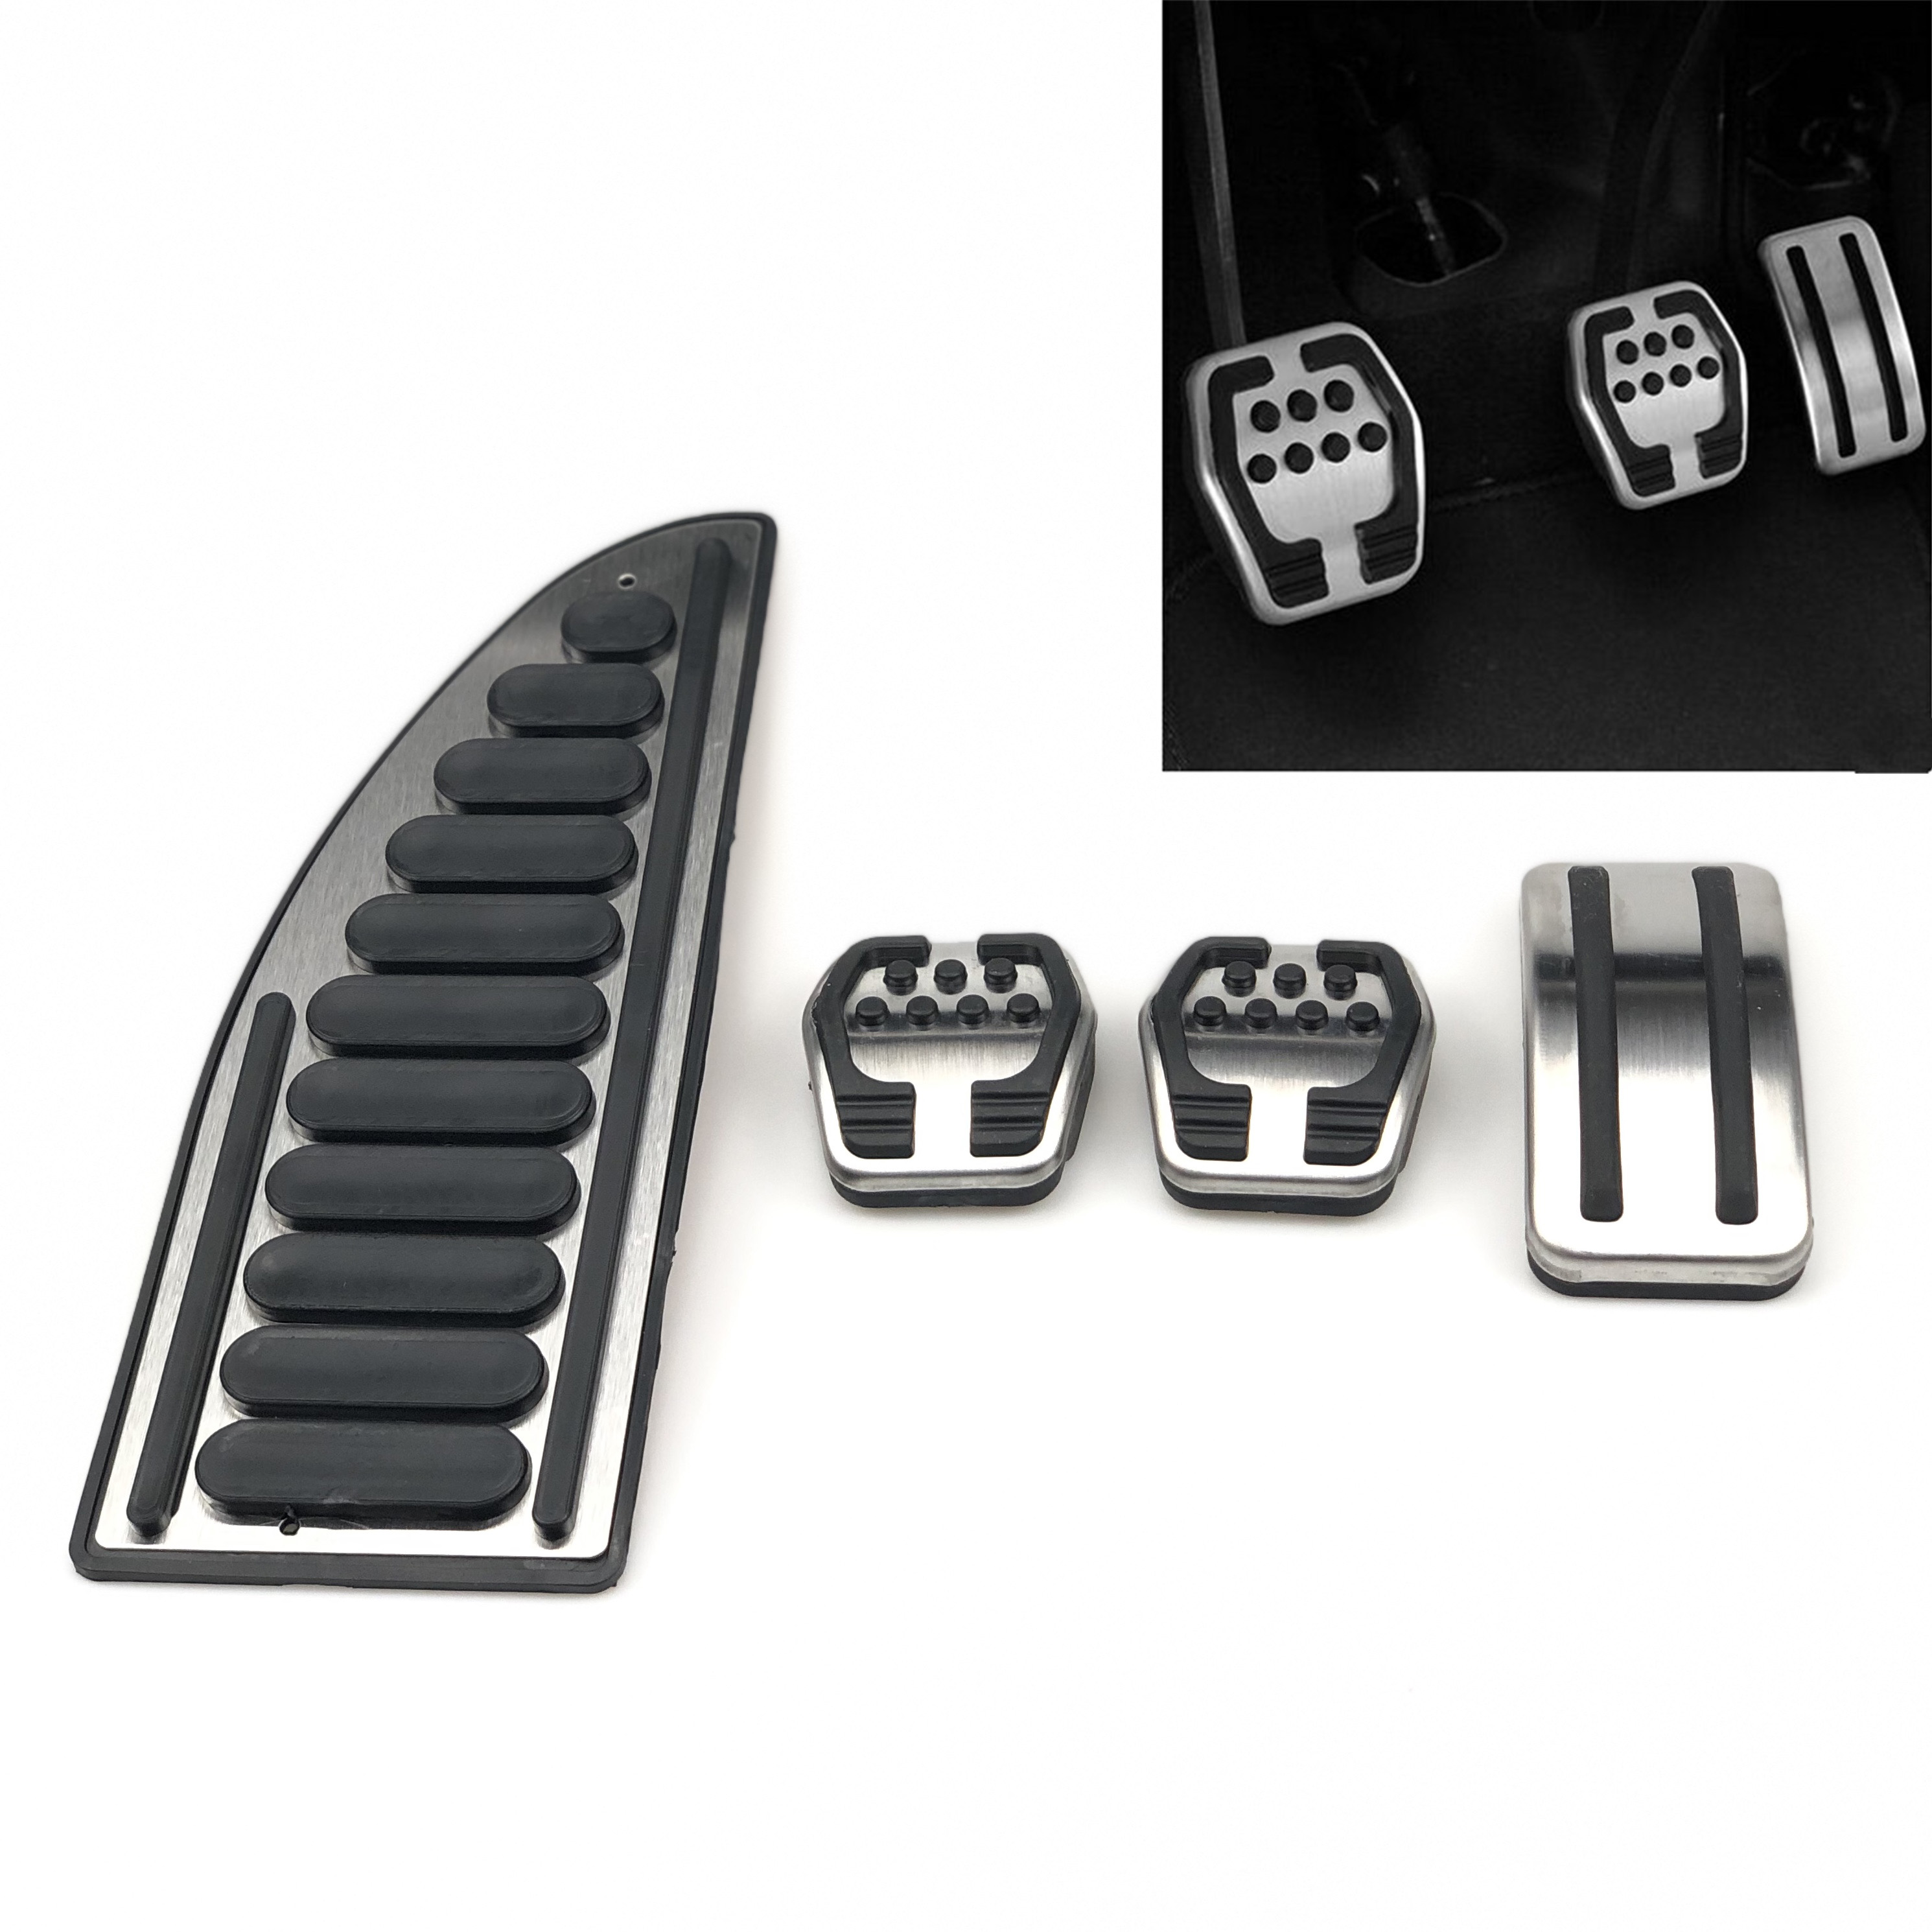 Car Accessories Stainless Steel Pedal For Ford Focus KUGA Escape Escort C-Max S-Max Mondeo Fusion MK4 For Mazda3 For LINCOLN MKC